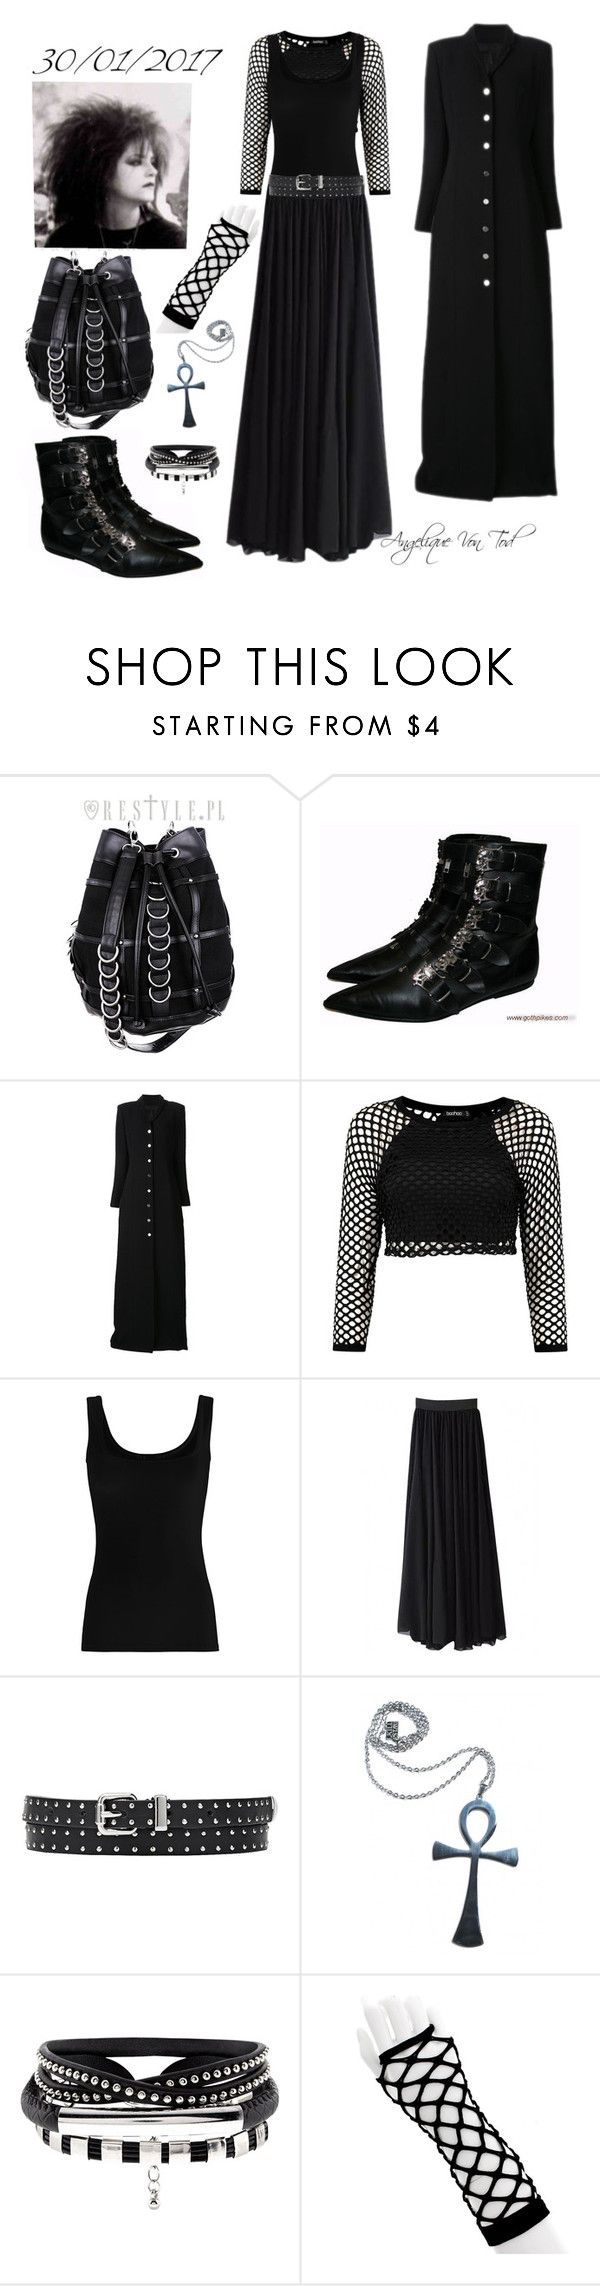 """""""Trad Goth"""" by angelique-von-tod ❤ liked on Polyvore featuring Y/Project, Twenty and Kill Star"""